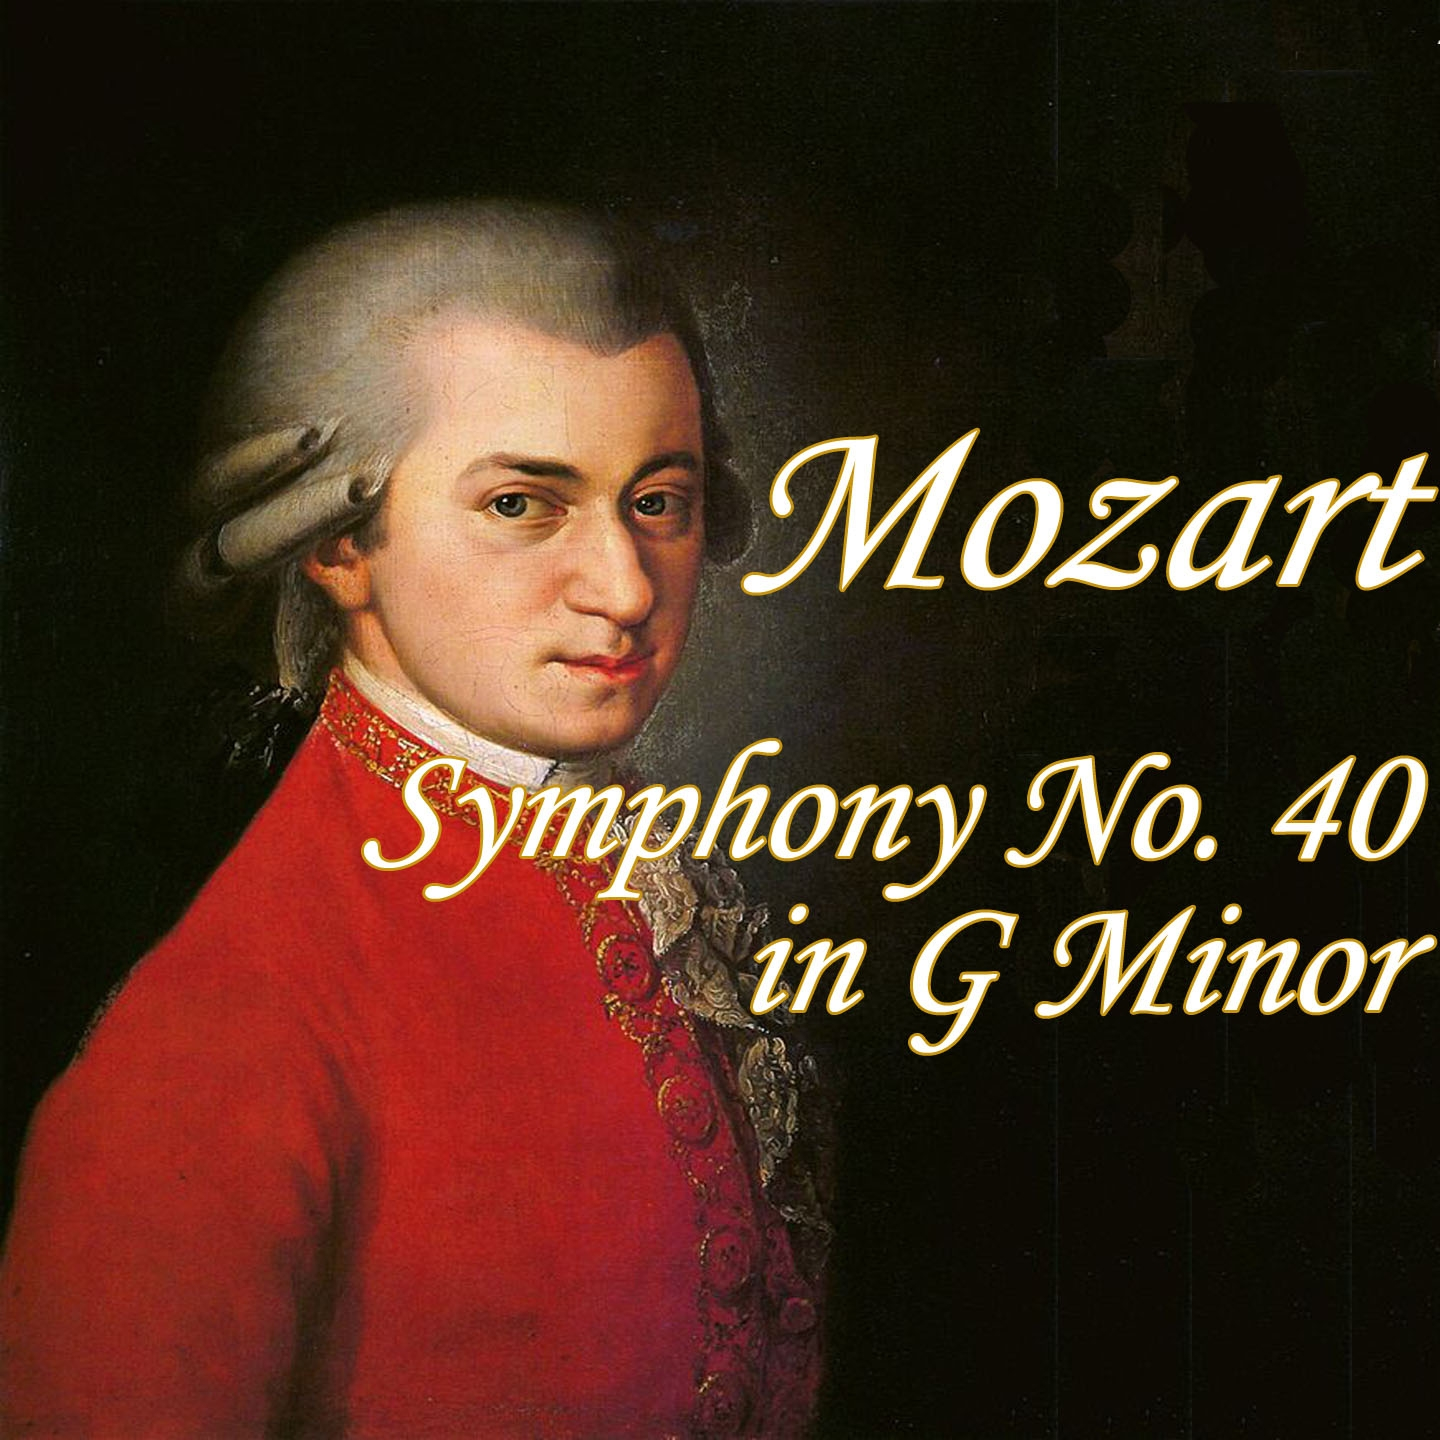 Mozart: Symphony No. 40 in G Minor